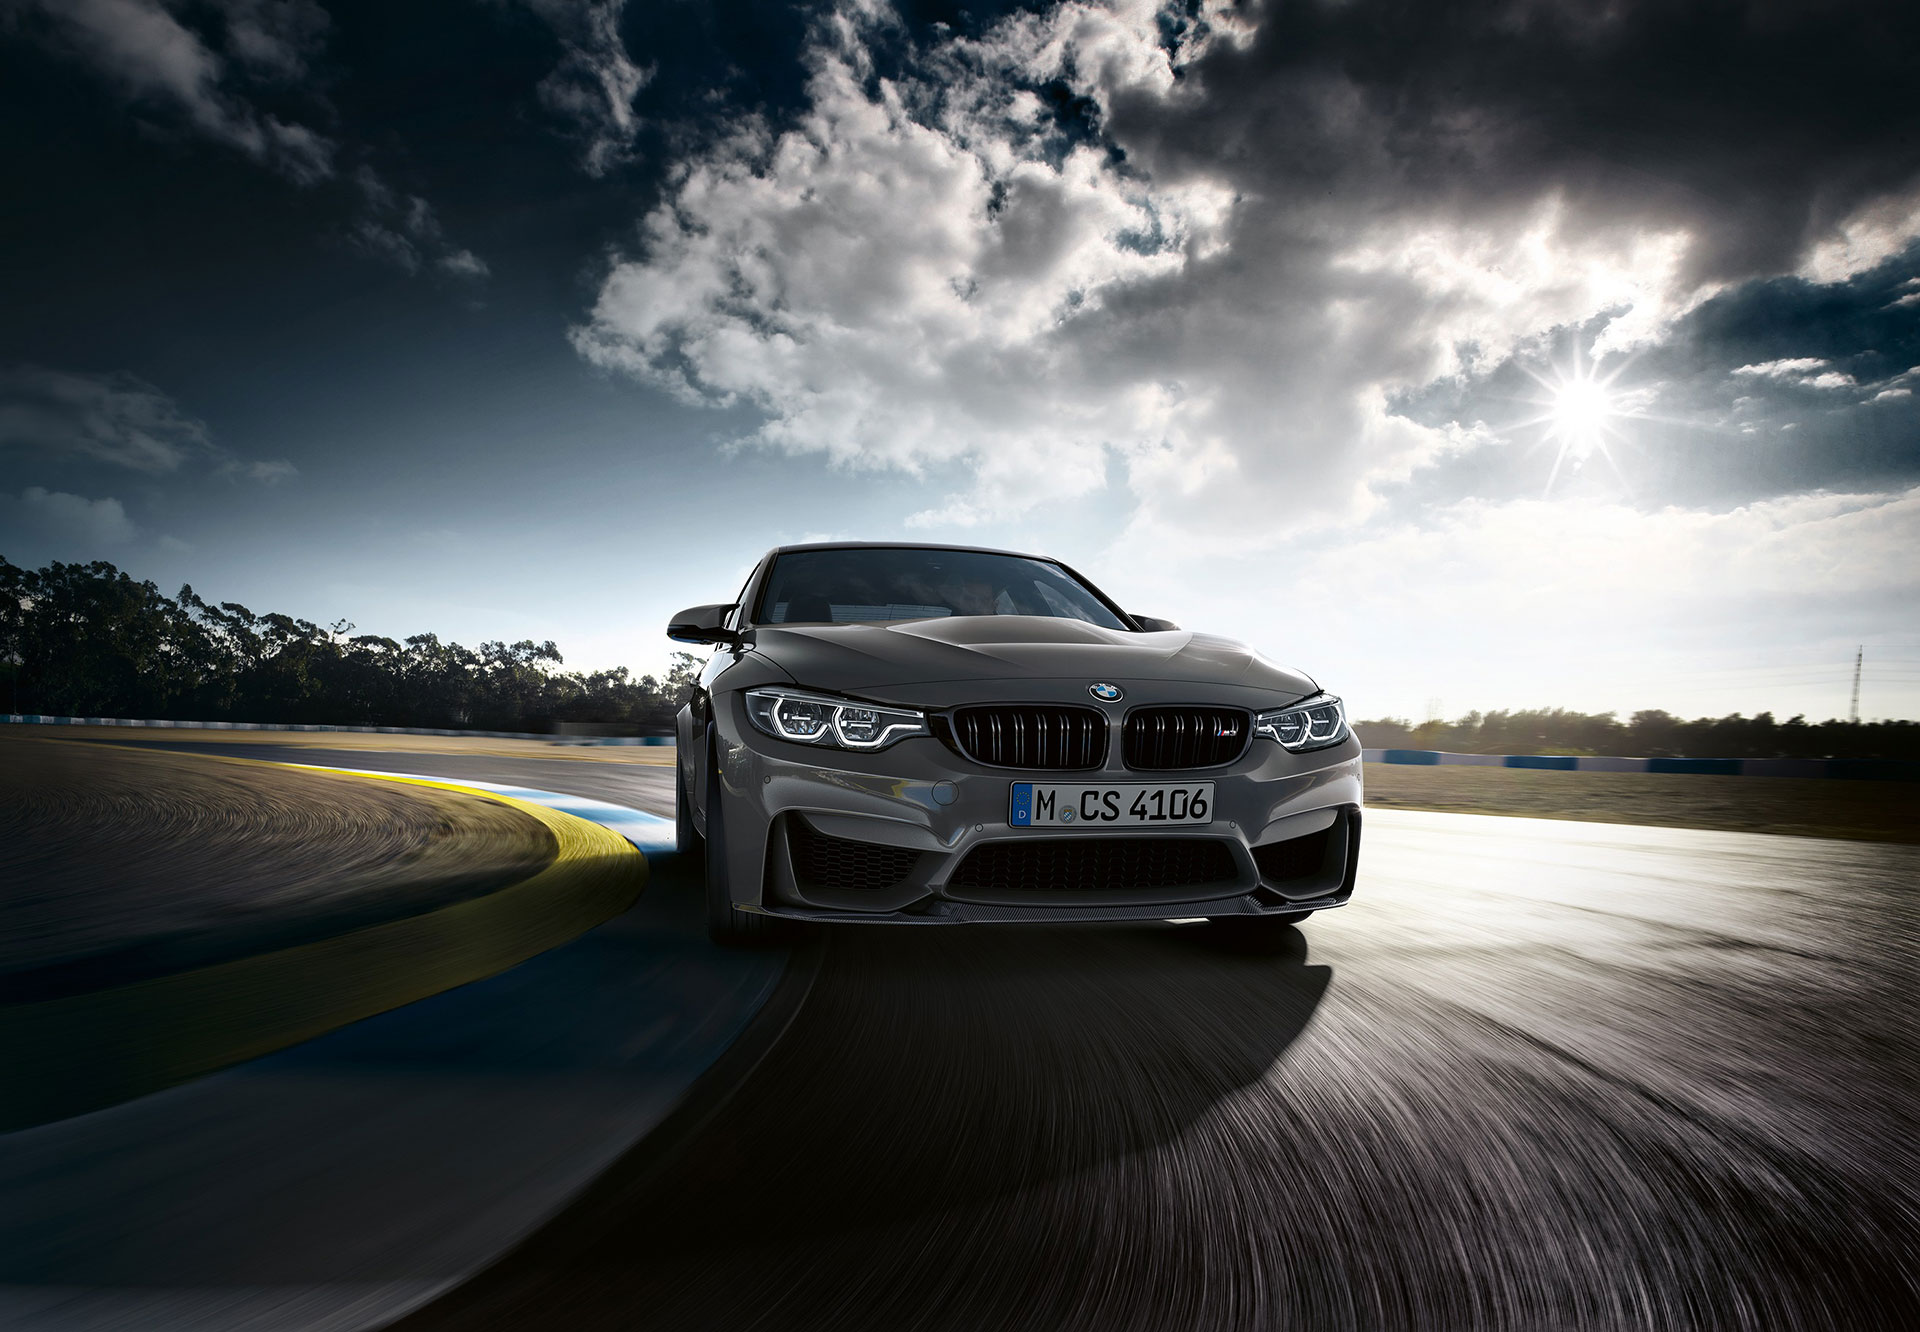 The New Bmw M3 Cs Revealed In Photos And Video Arab Motor World